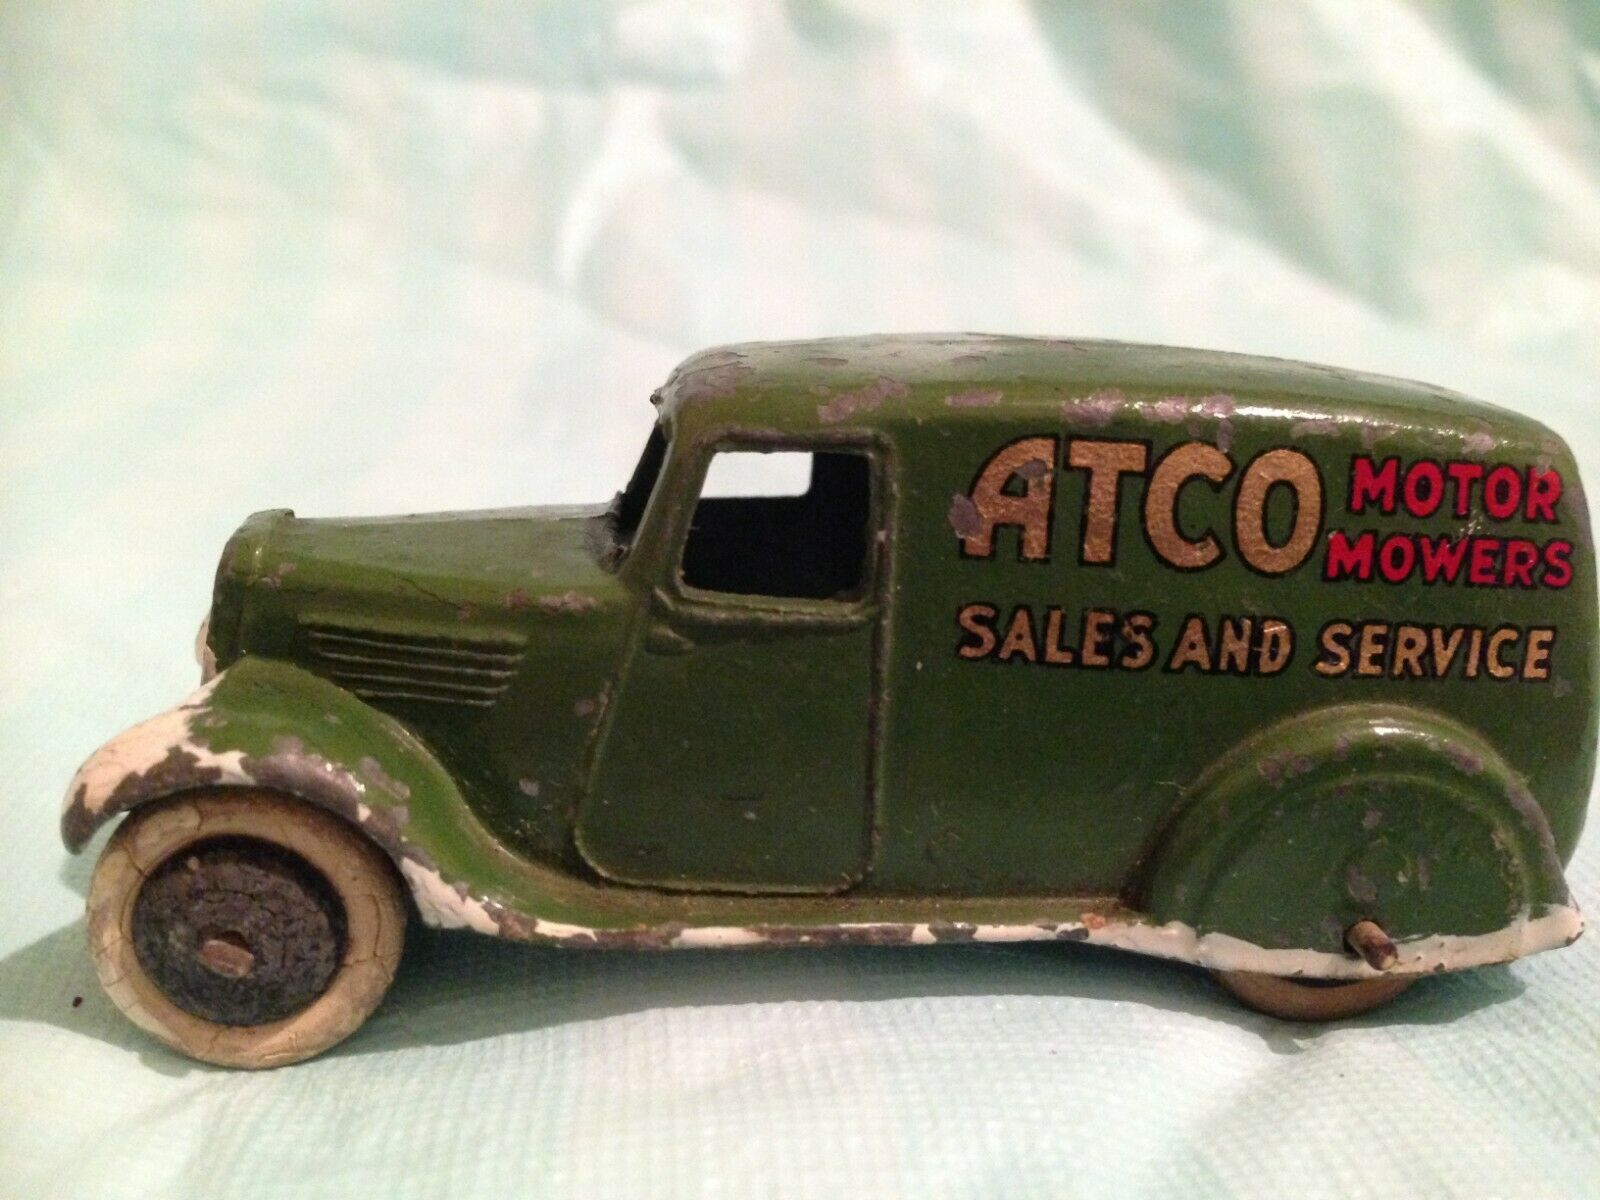 Very Rare Dinky Type 2 28N Green Atco Sales & Service Van with White Edging